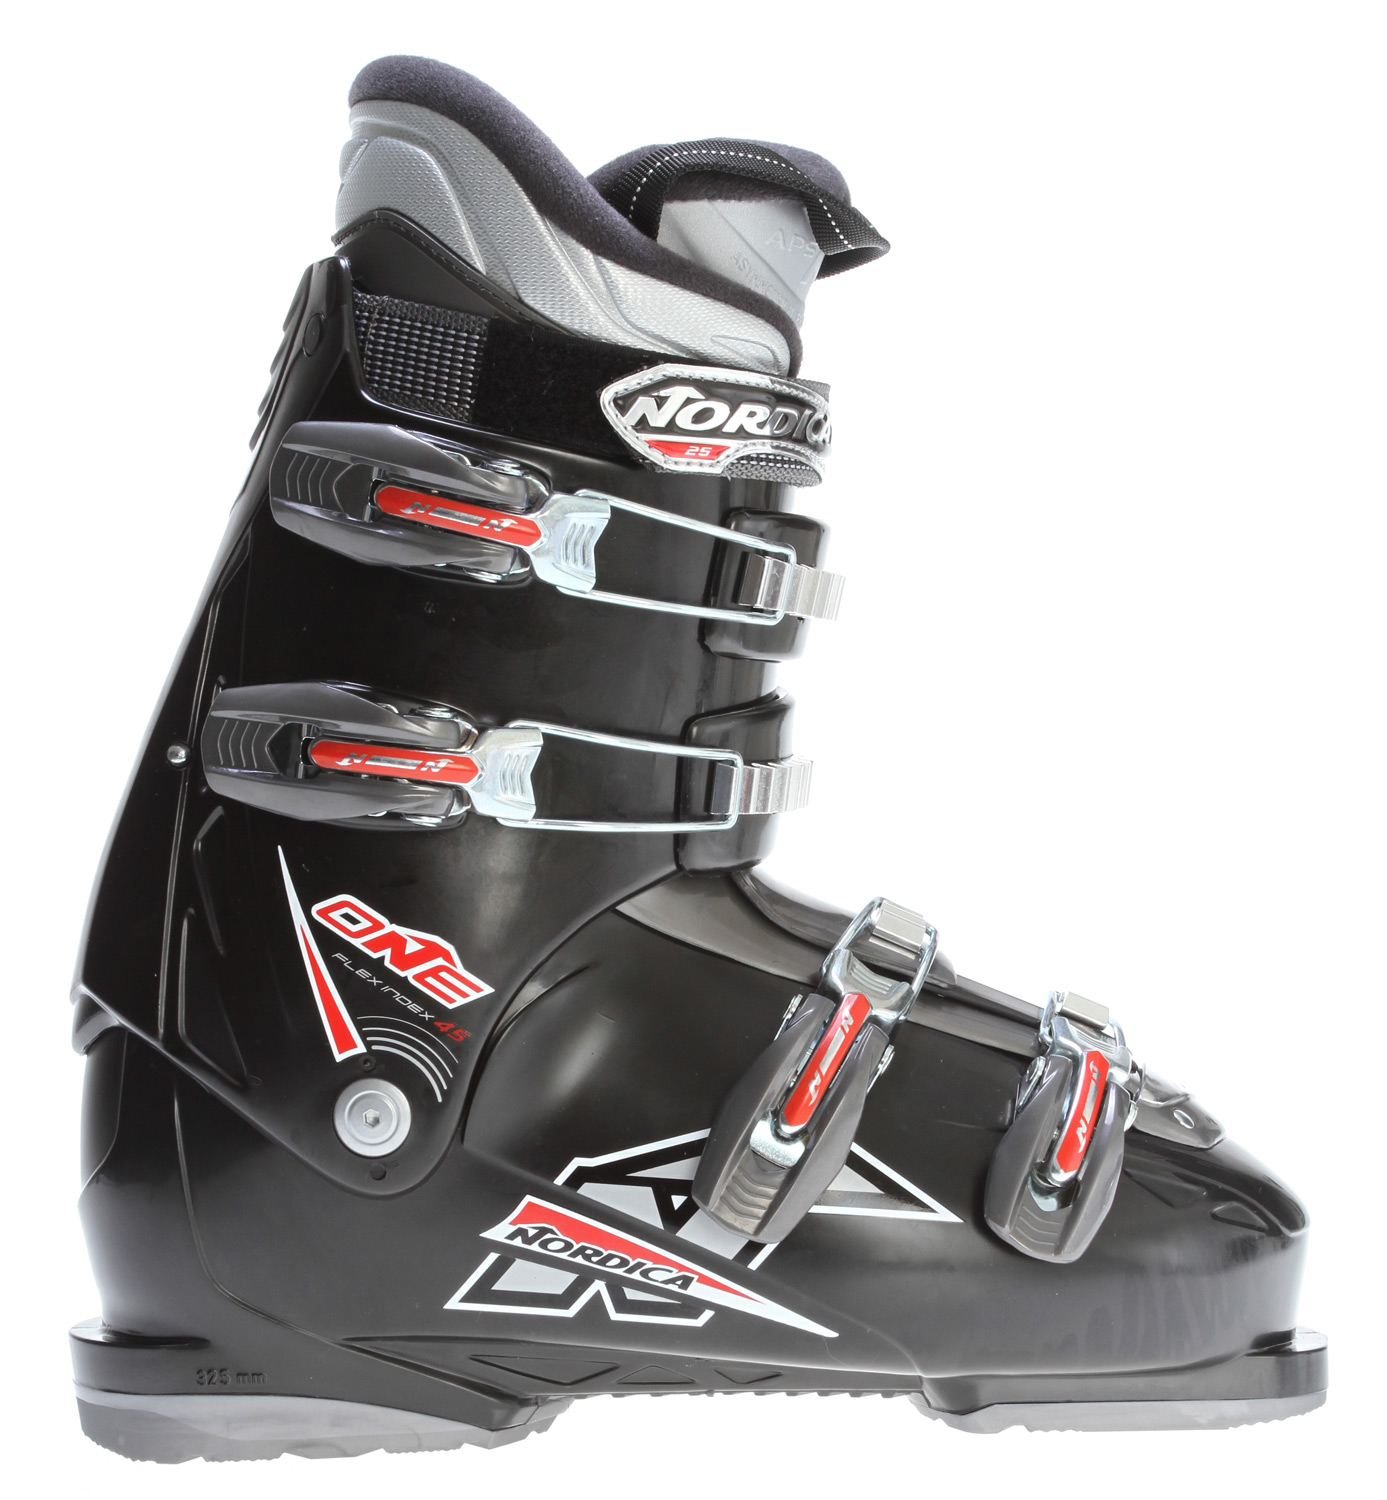 Ski Key Features of the Nordica One 45 Ski Boots: 3D Comfort fit liner HP Slide IN PC steel buckles Size range 25.0-31.0 MP Last 104mm - $179.00